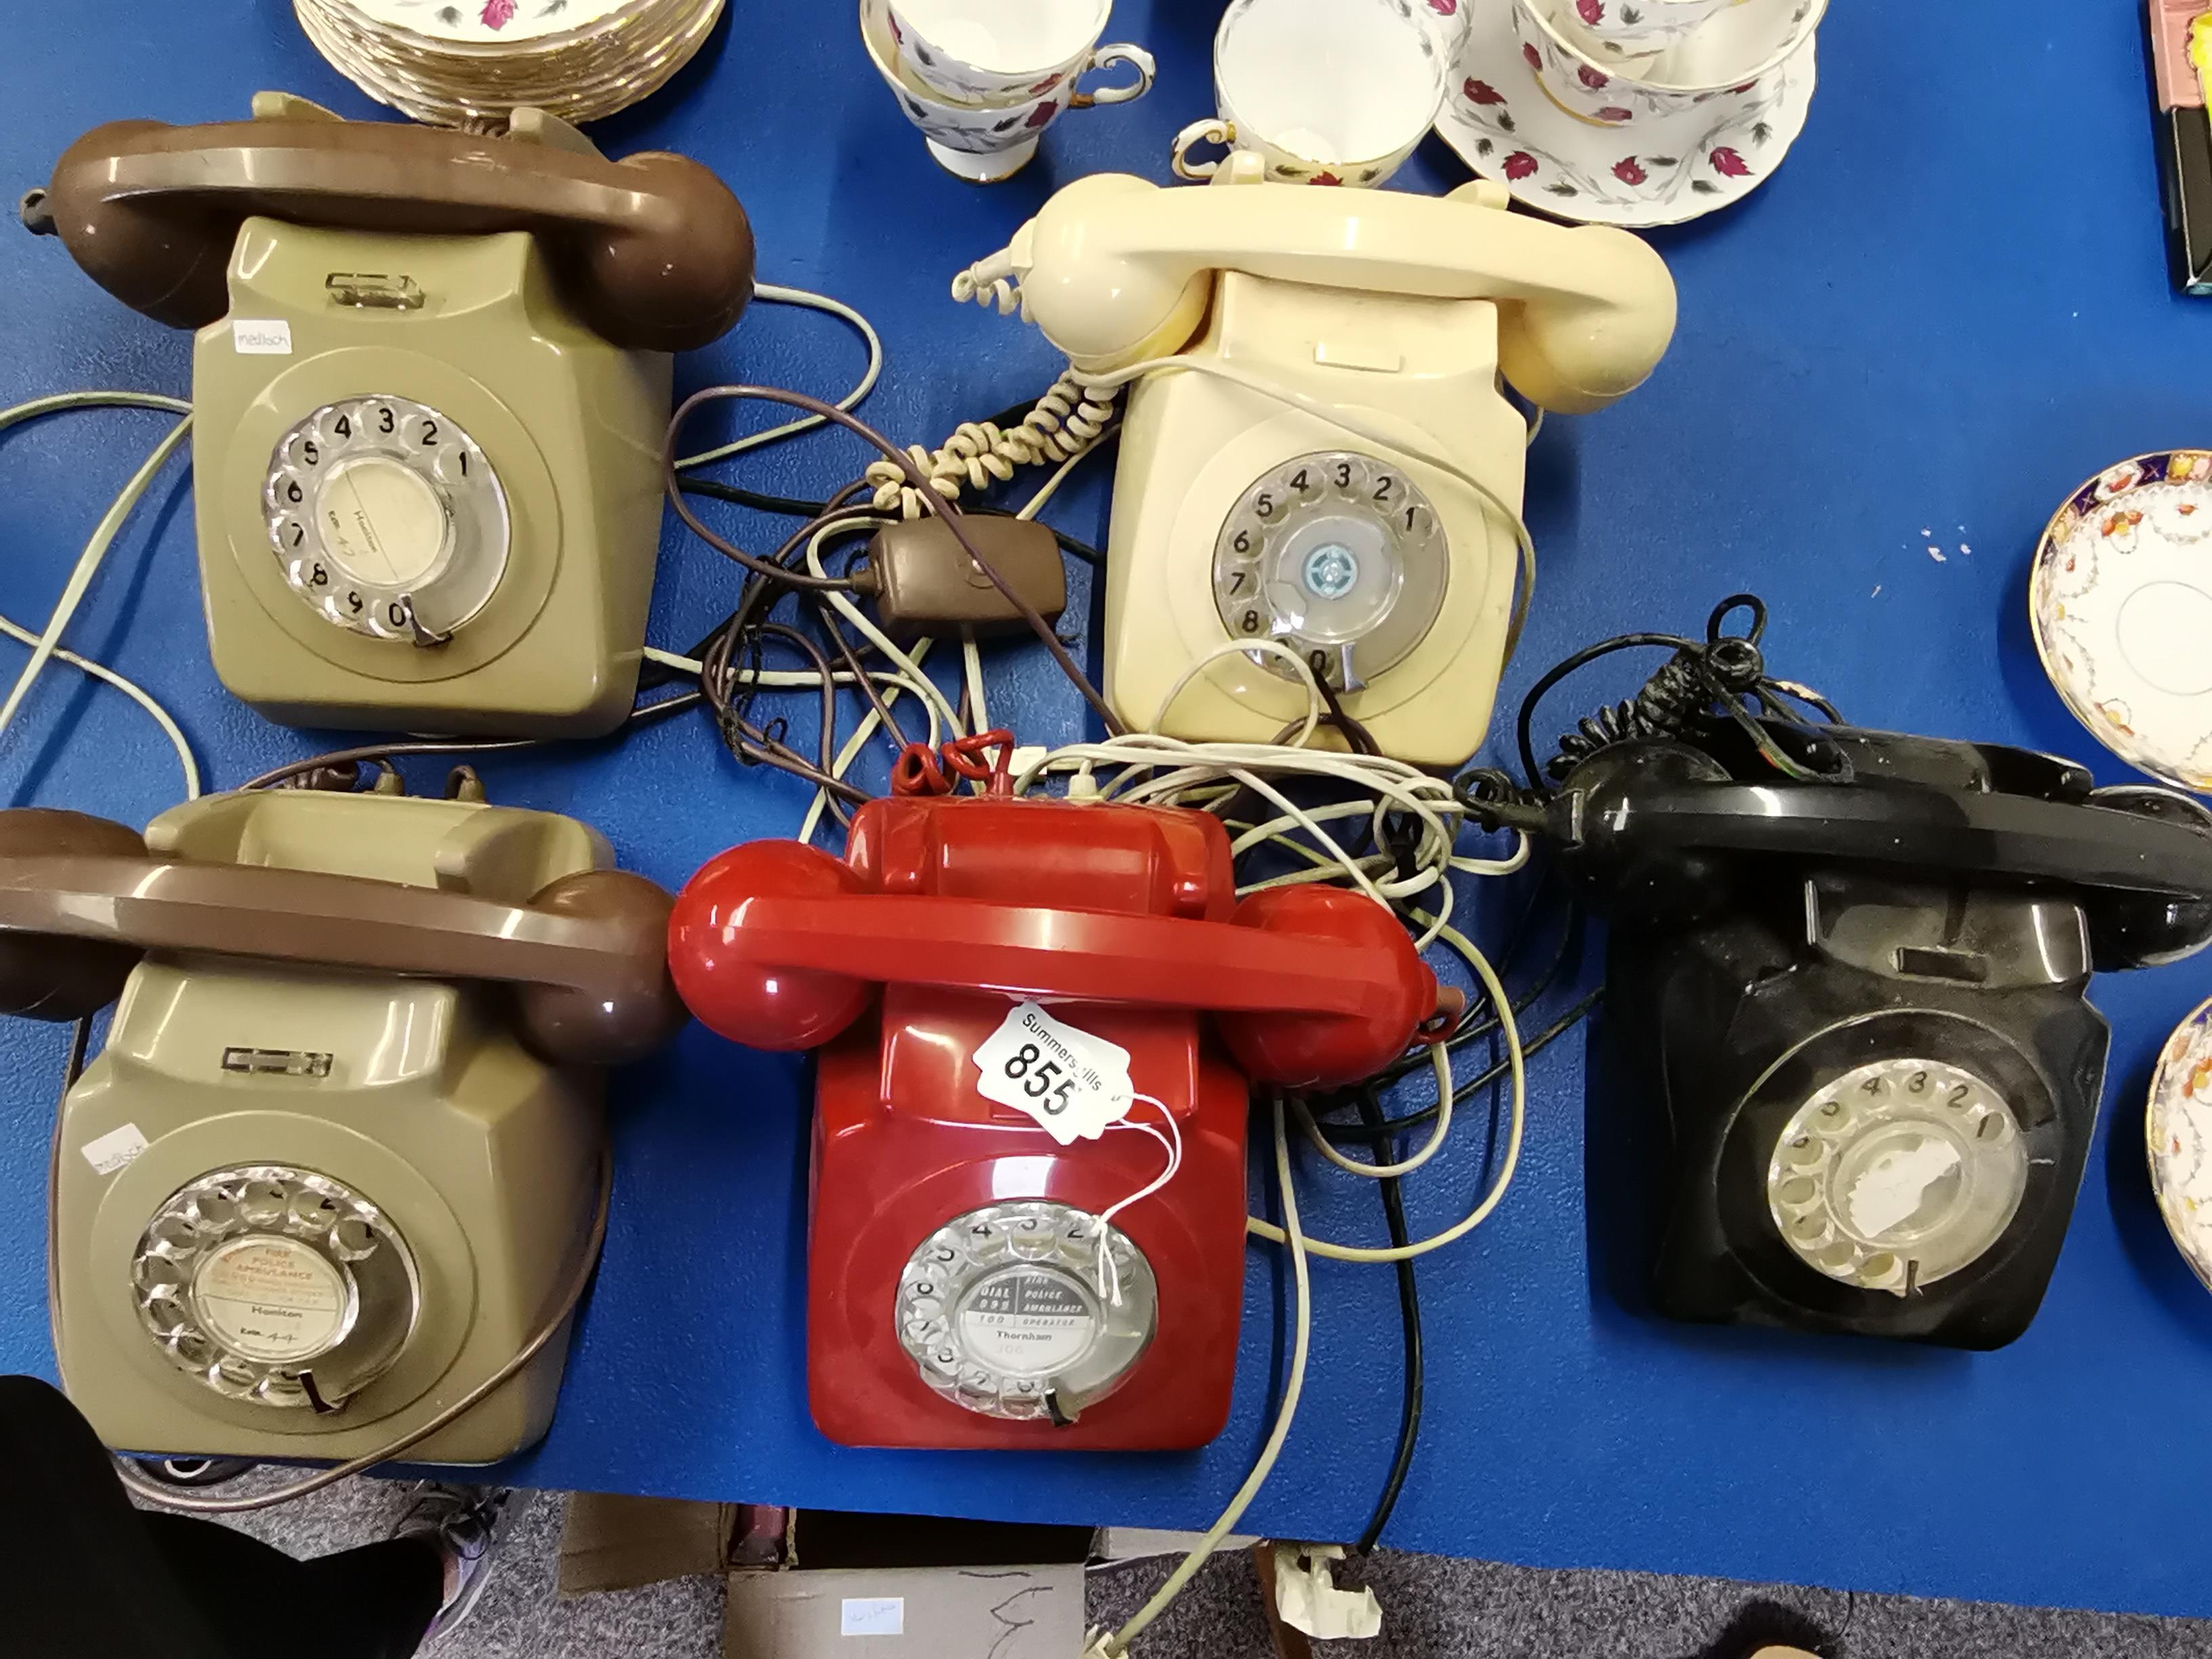 5 old Telephones 2 Grey 1 red 1 white 1 black - Image 3 of 3